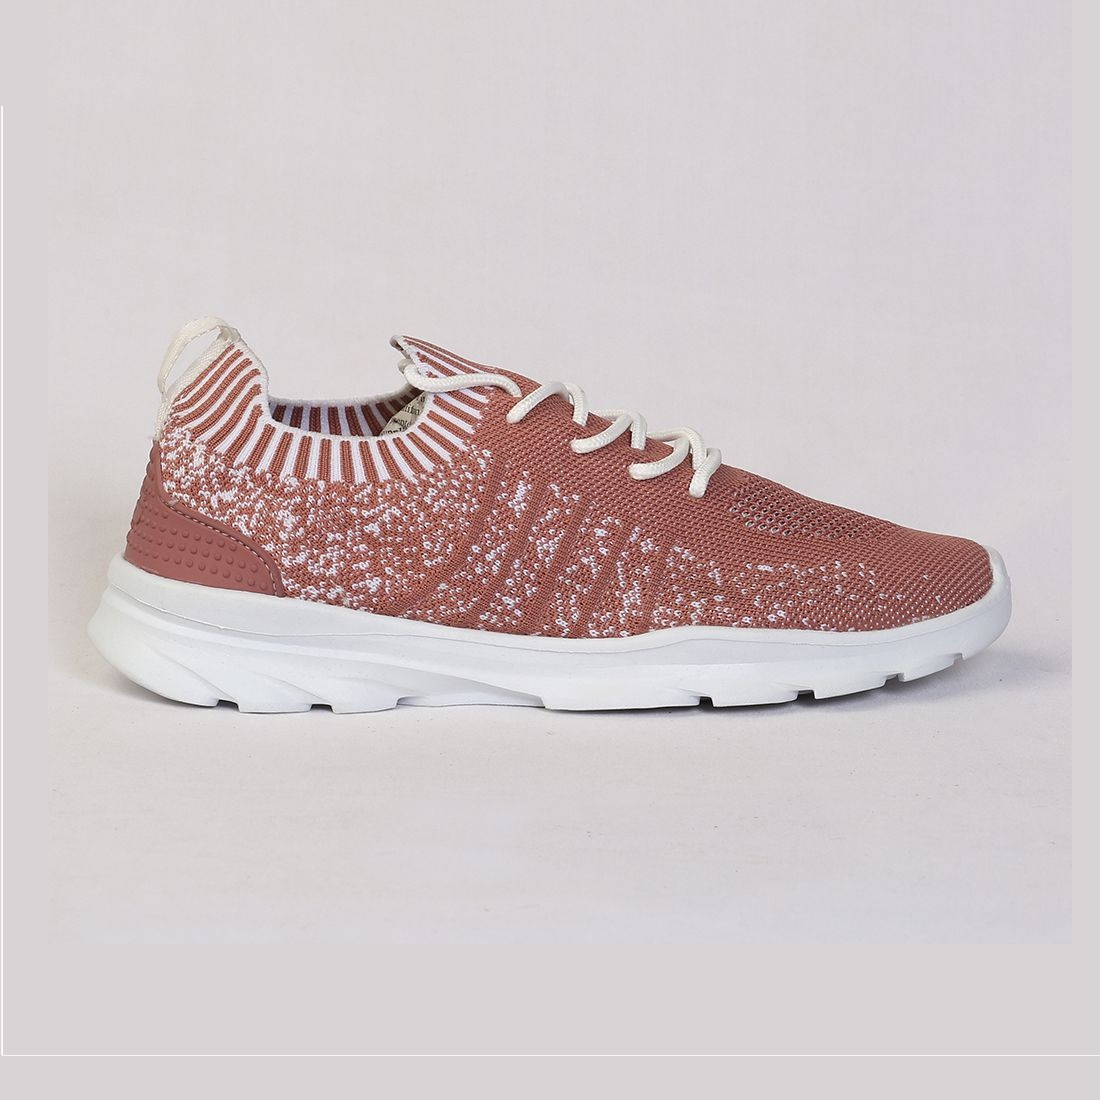 Goldstar Pink Sports Shoes For Women - G10 L651